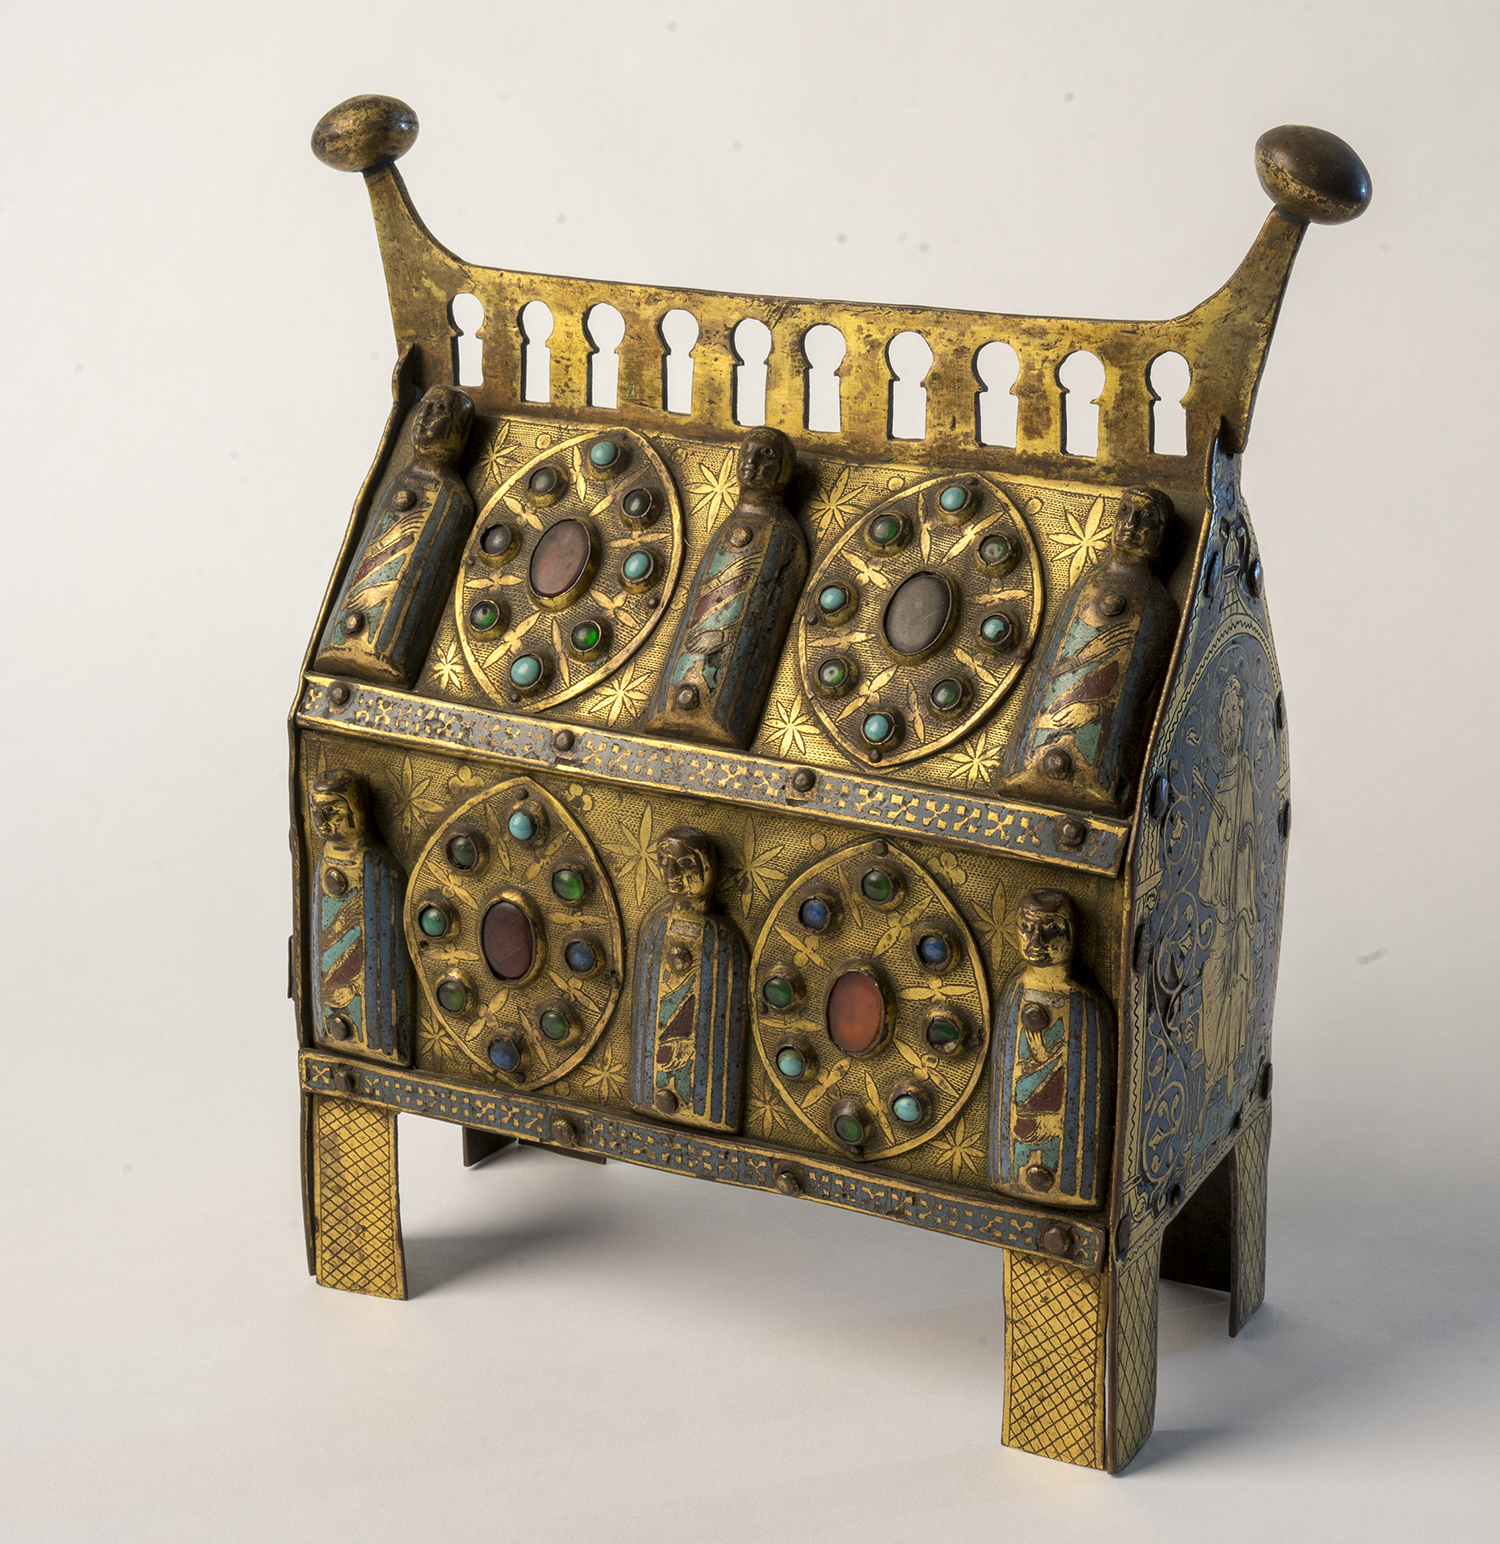 Figure 6:This copper and enamel reliquary, made during the thirteenth century in Limoges, France, was intended for the veneration of a saint's relics. The front features the images of six saints. On exhibit in Glencairn Museum's Medieval Treasury (05.EN.111).